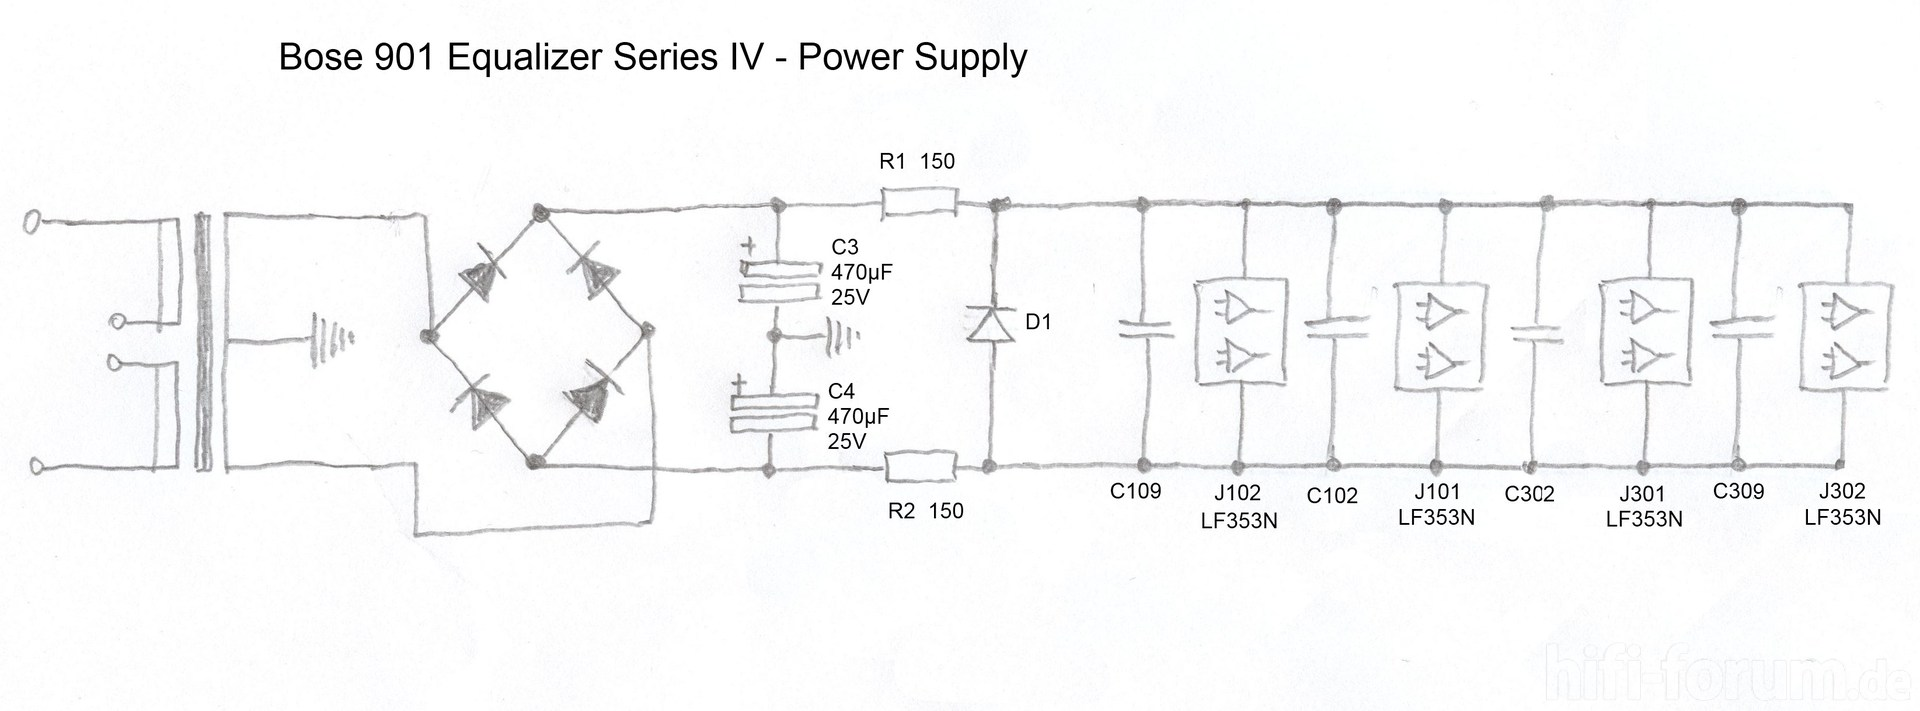 bose 901 wiring diagram   23 wiring diagram images